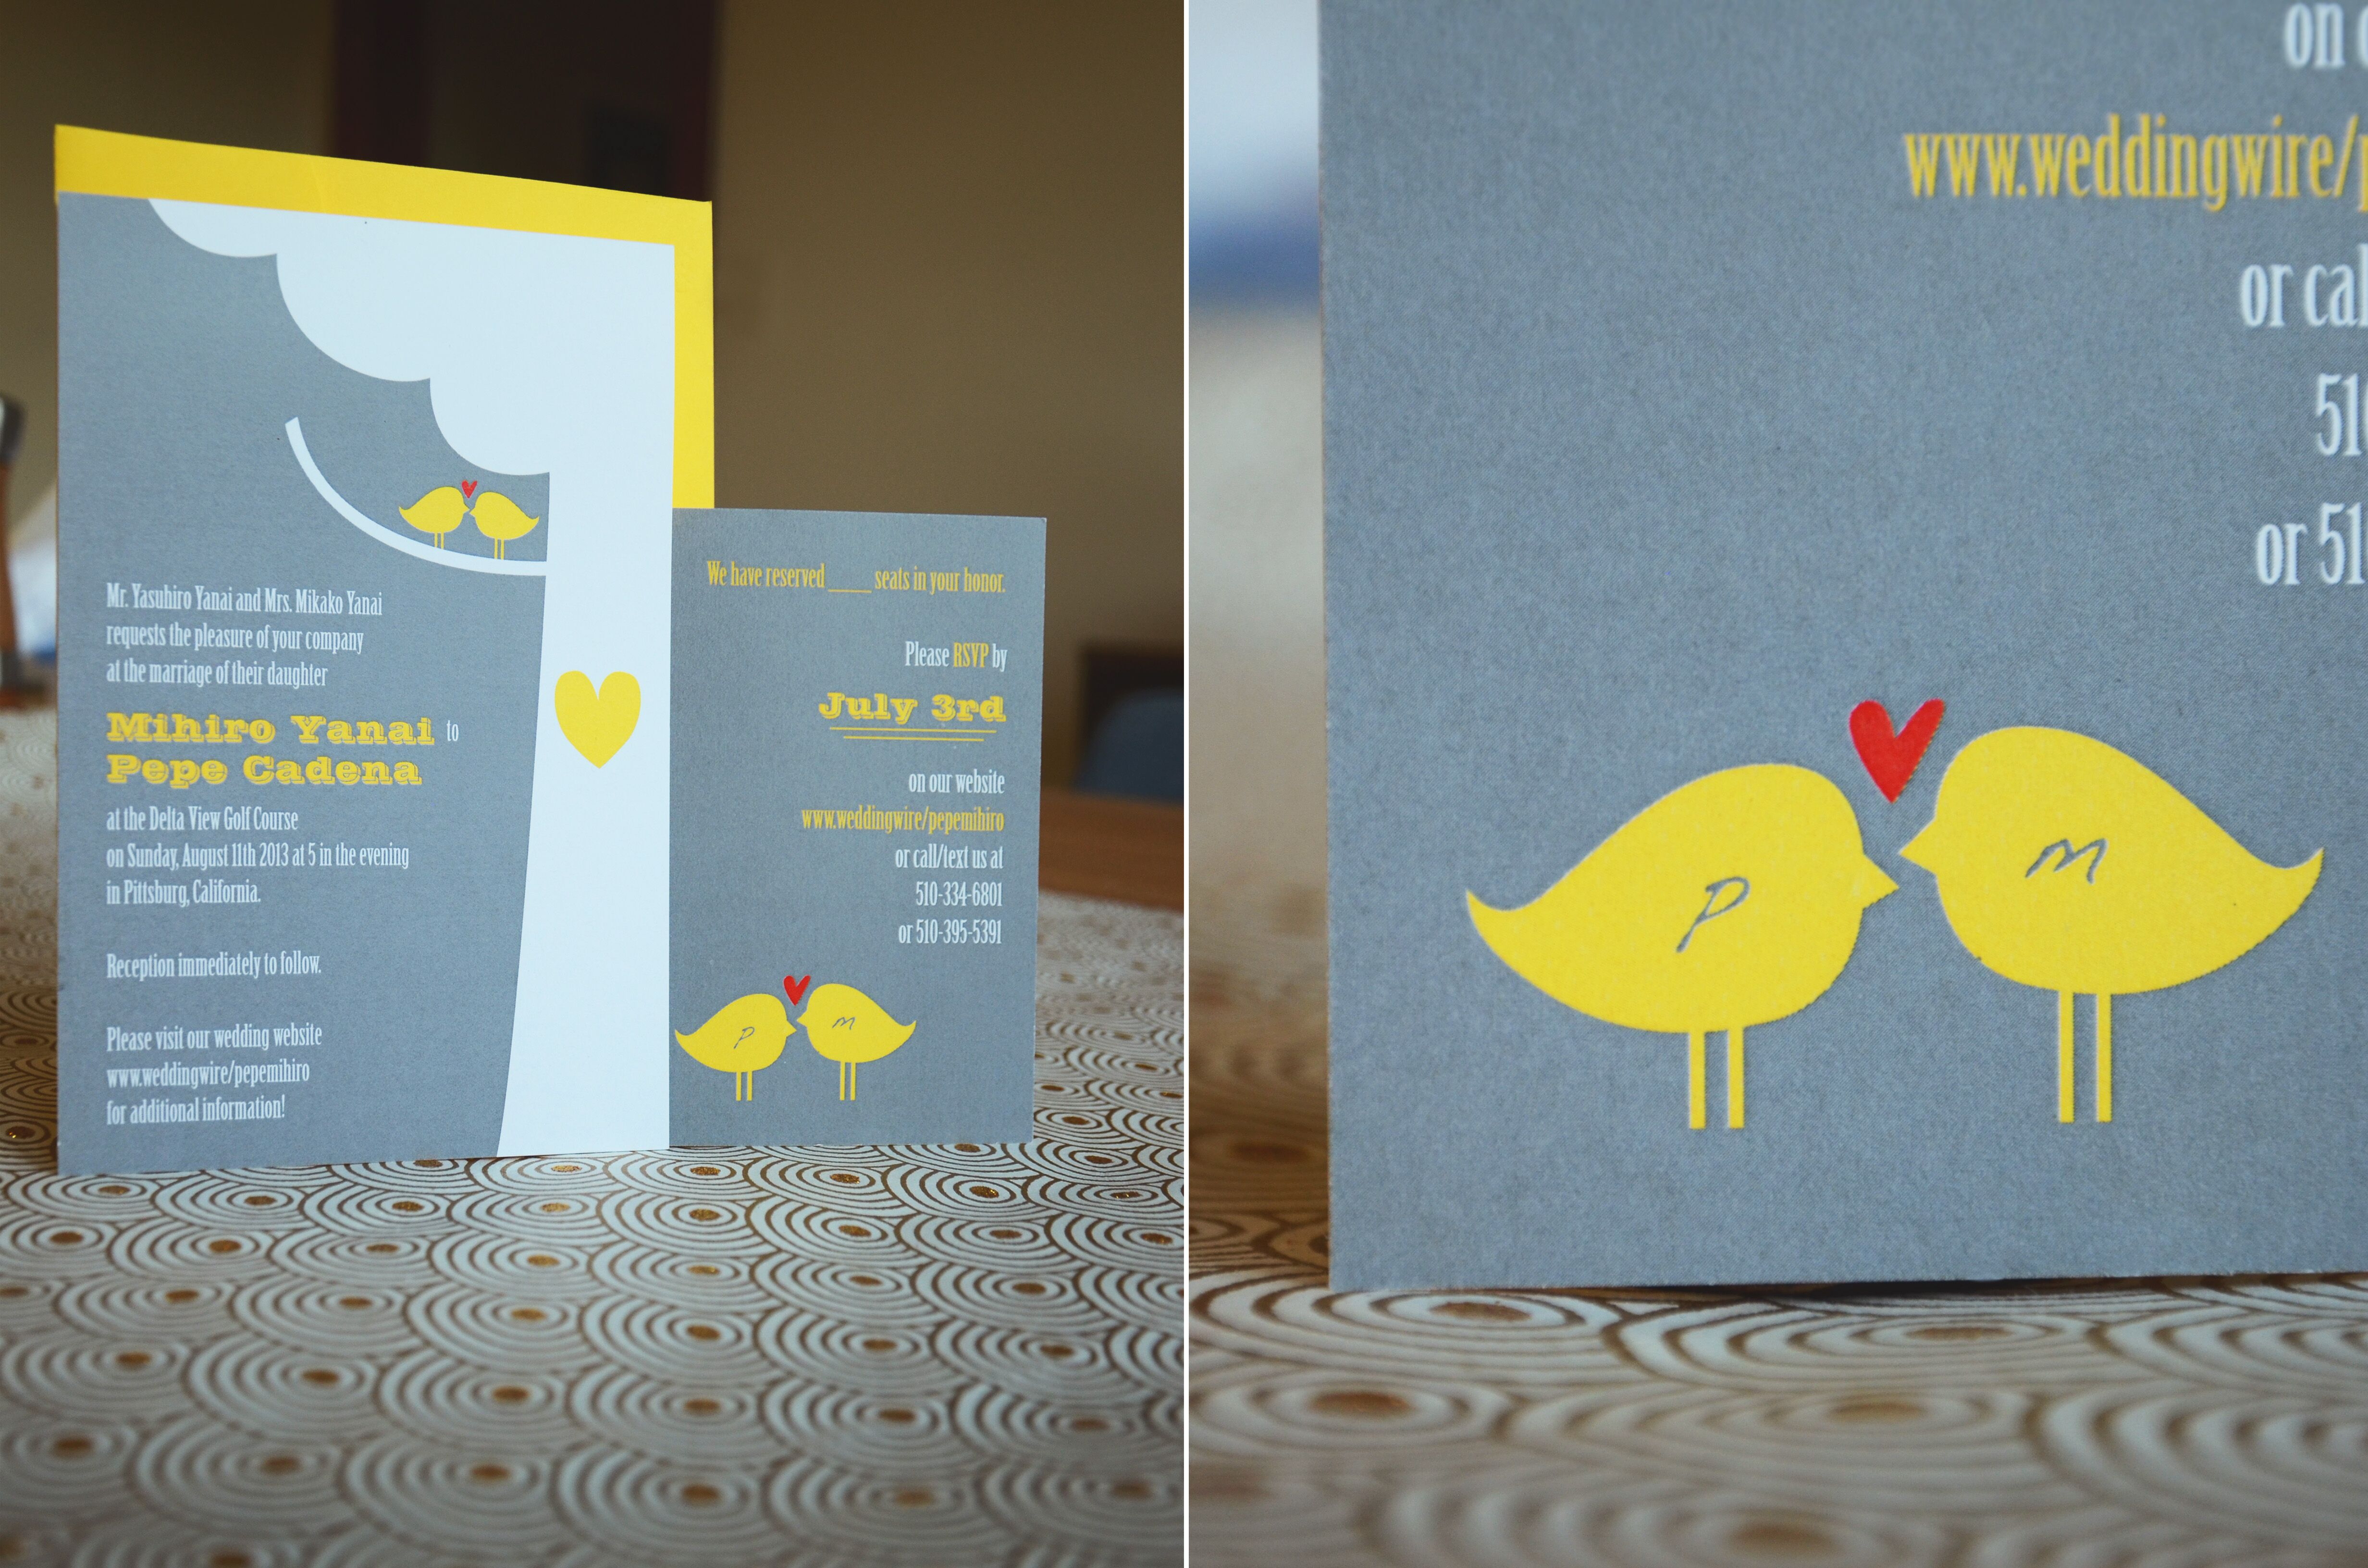 Invitations + Paper in Indianapolis, IN - The Knot